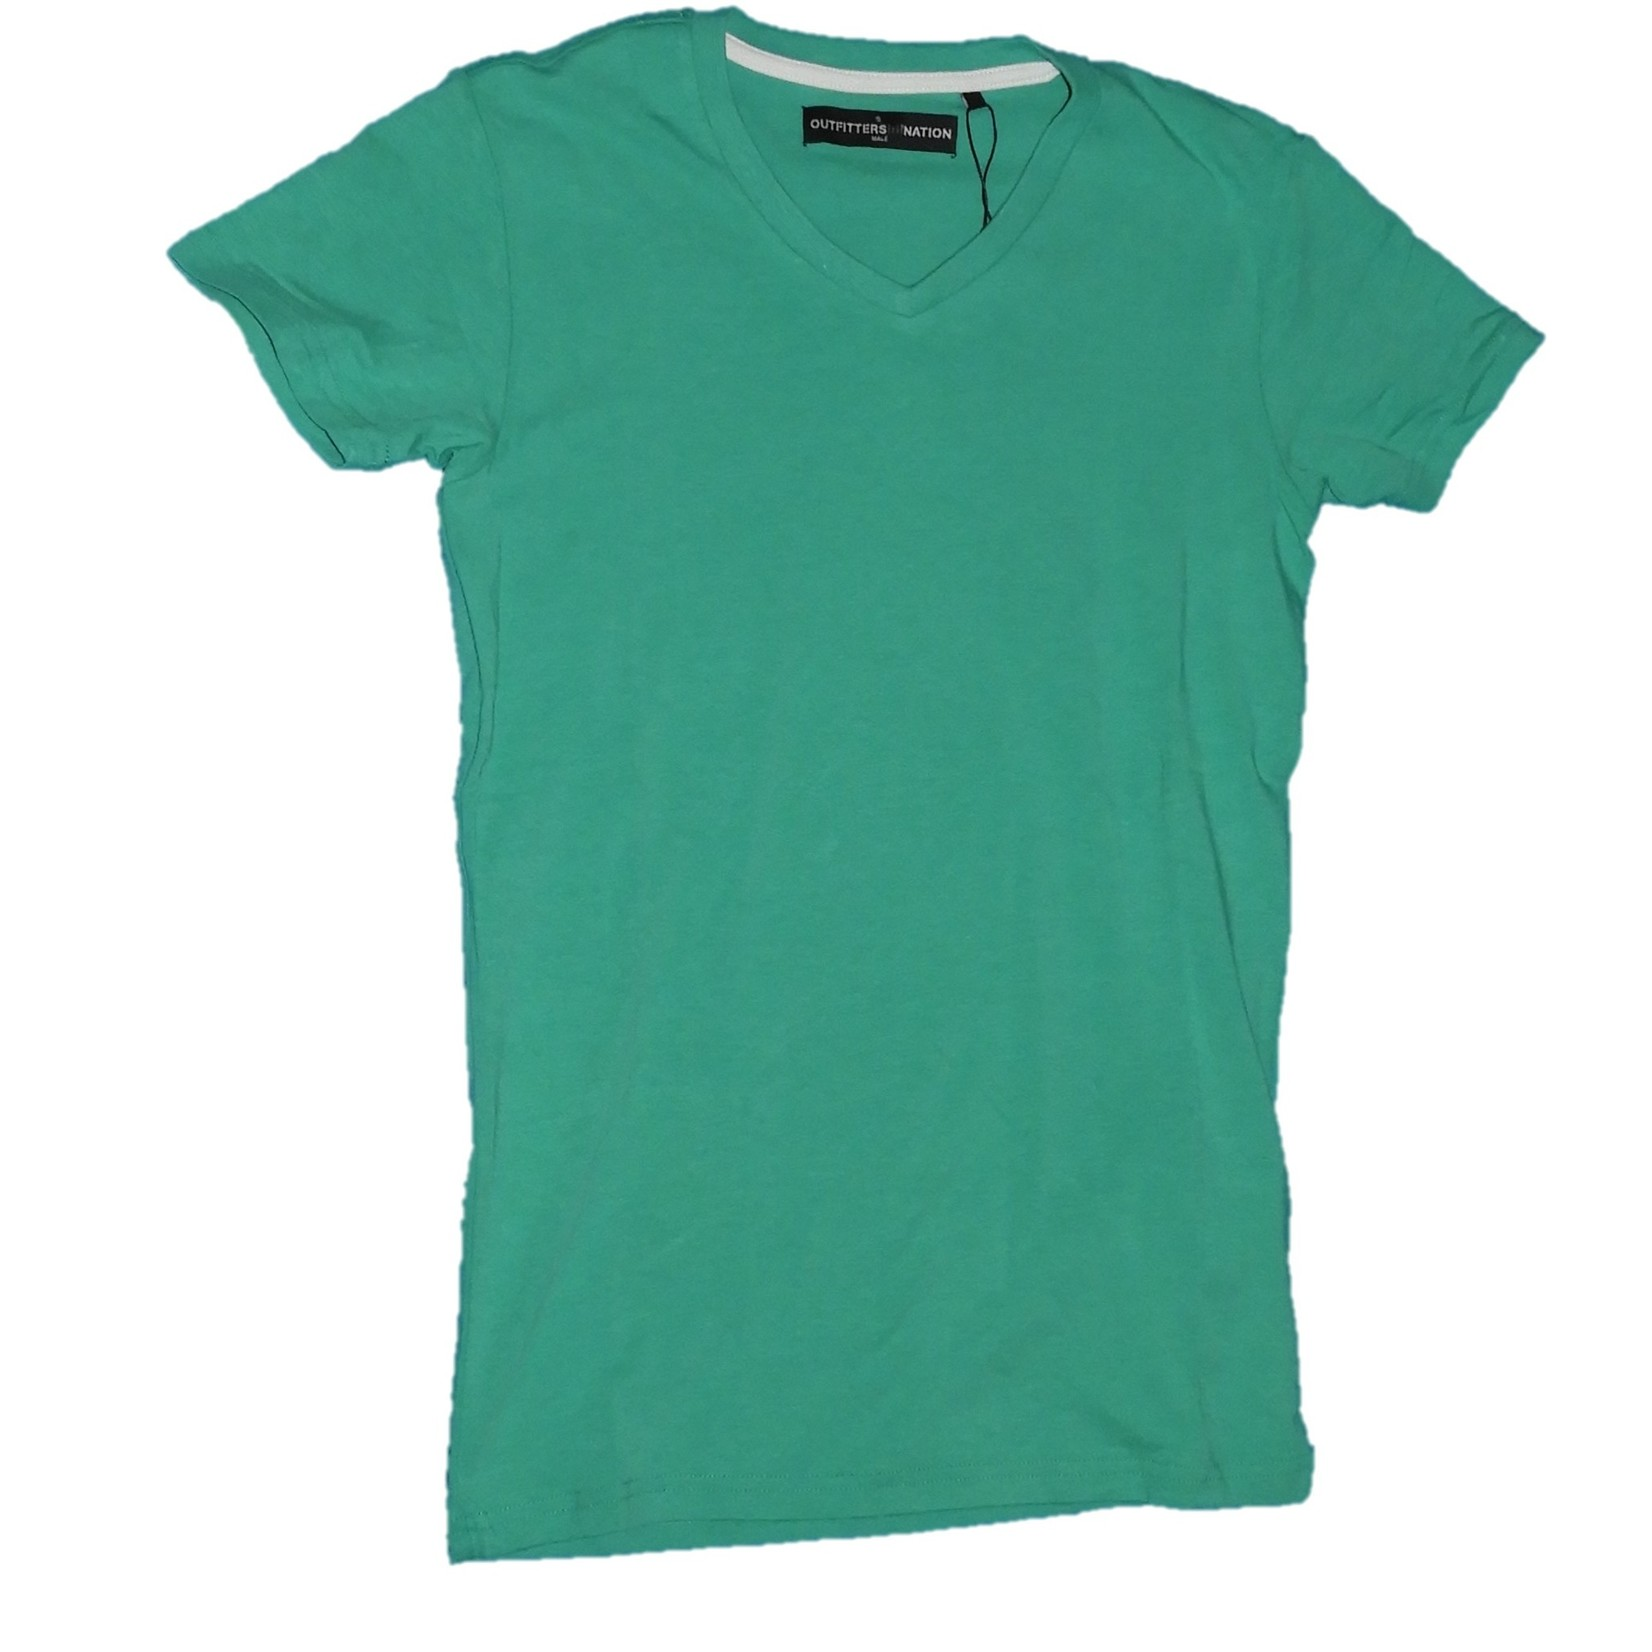 Outfitters Nation T-shirt maat 152 + 164